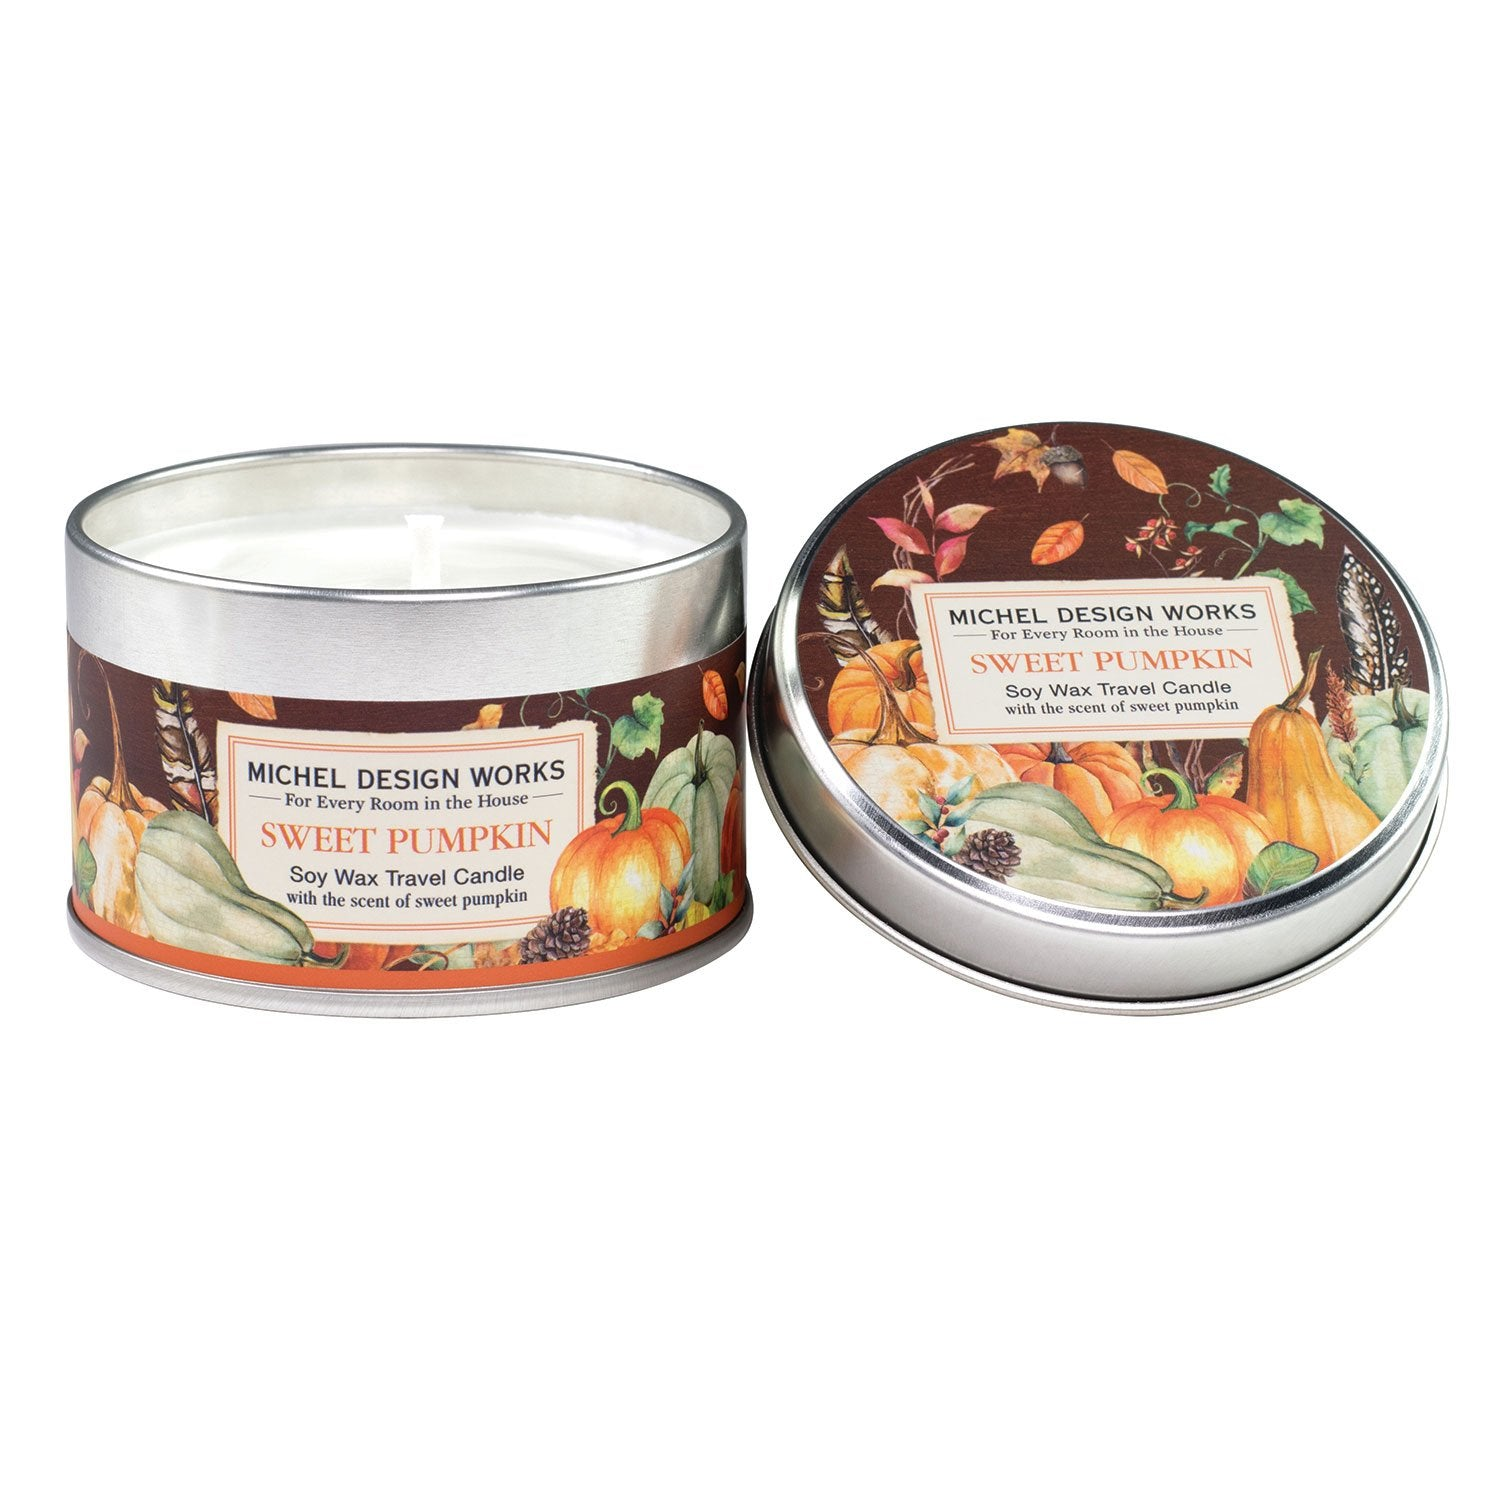 Sweet Pumpkin Travel Candle